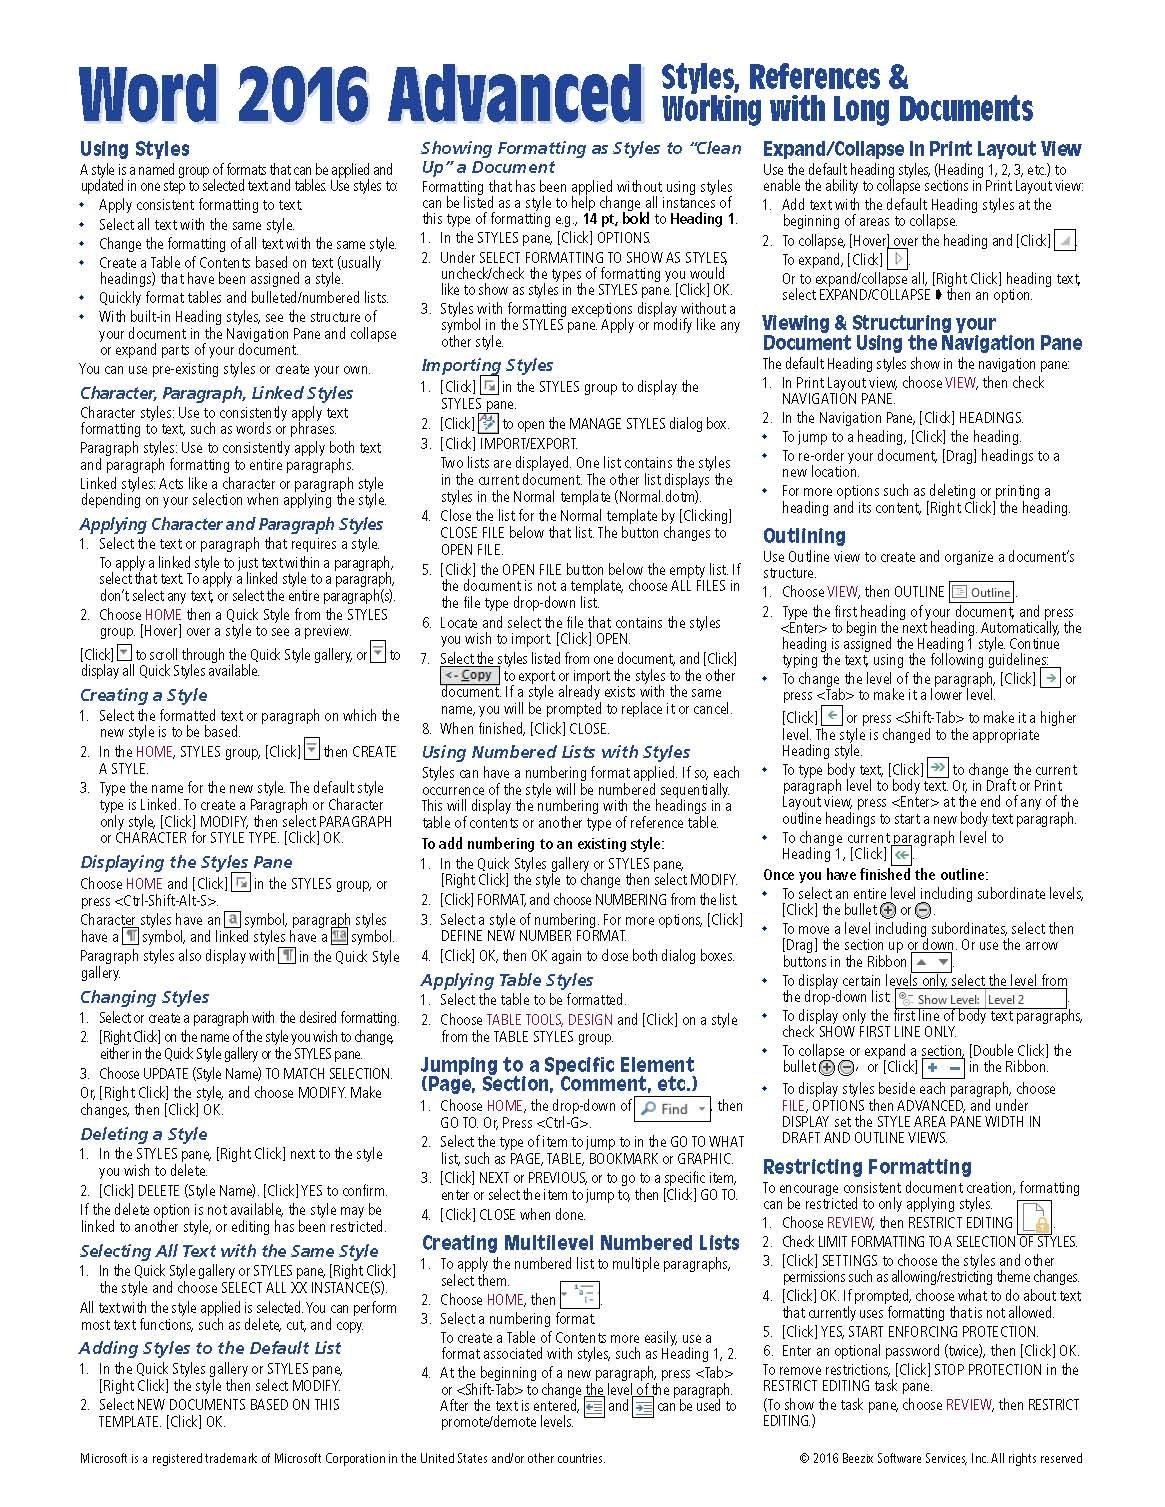 Microsoft Word 2016 Advanced Quick Reference Guide - Windows Version ...